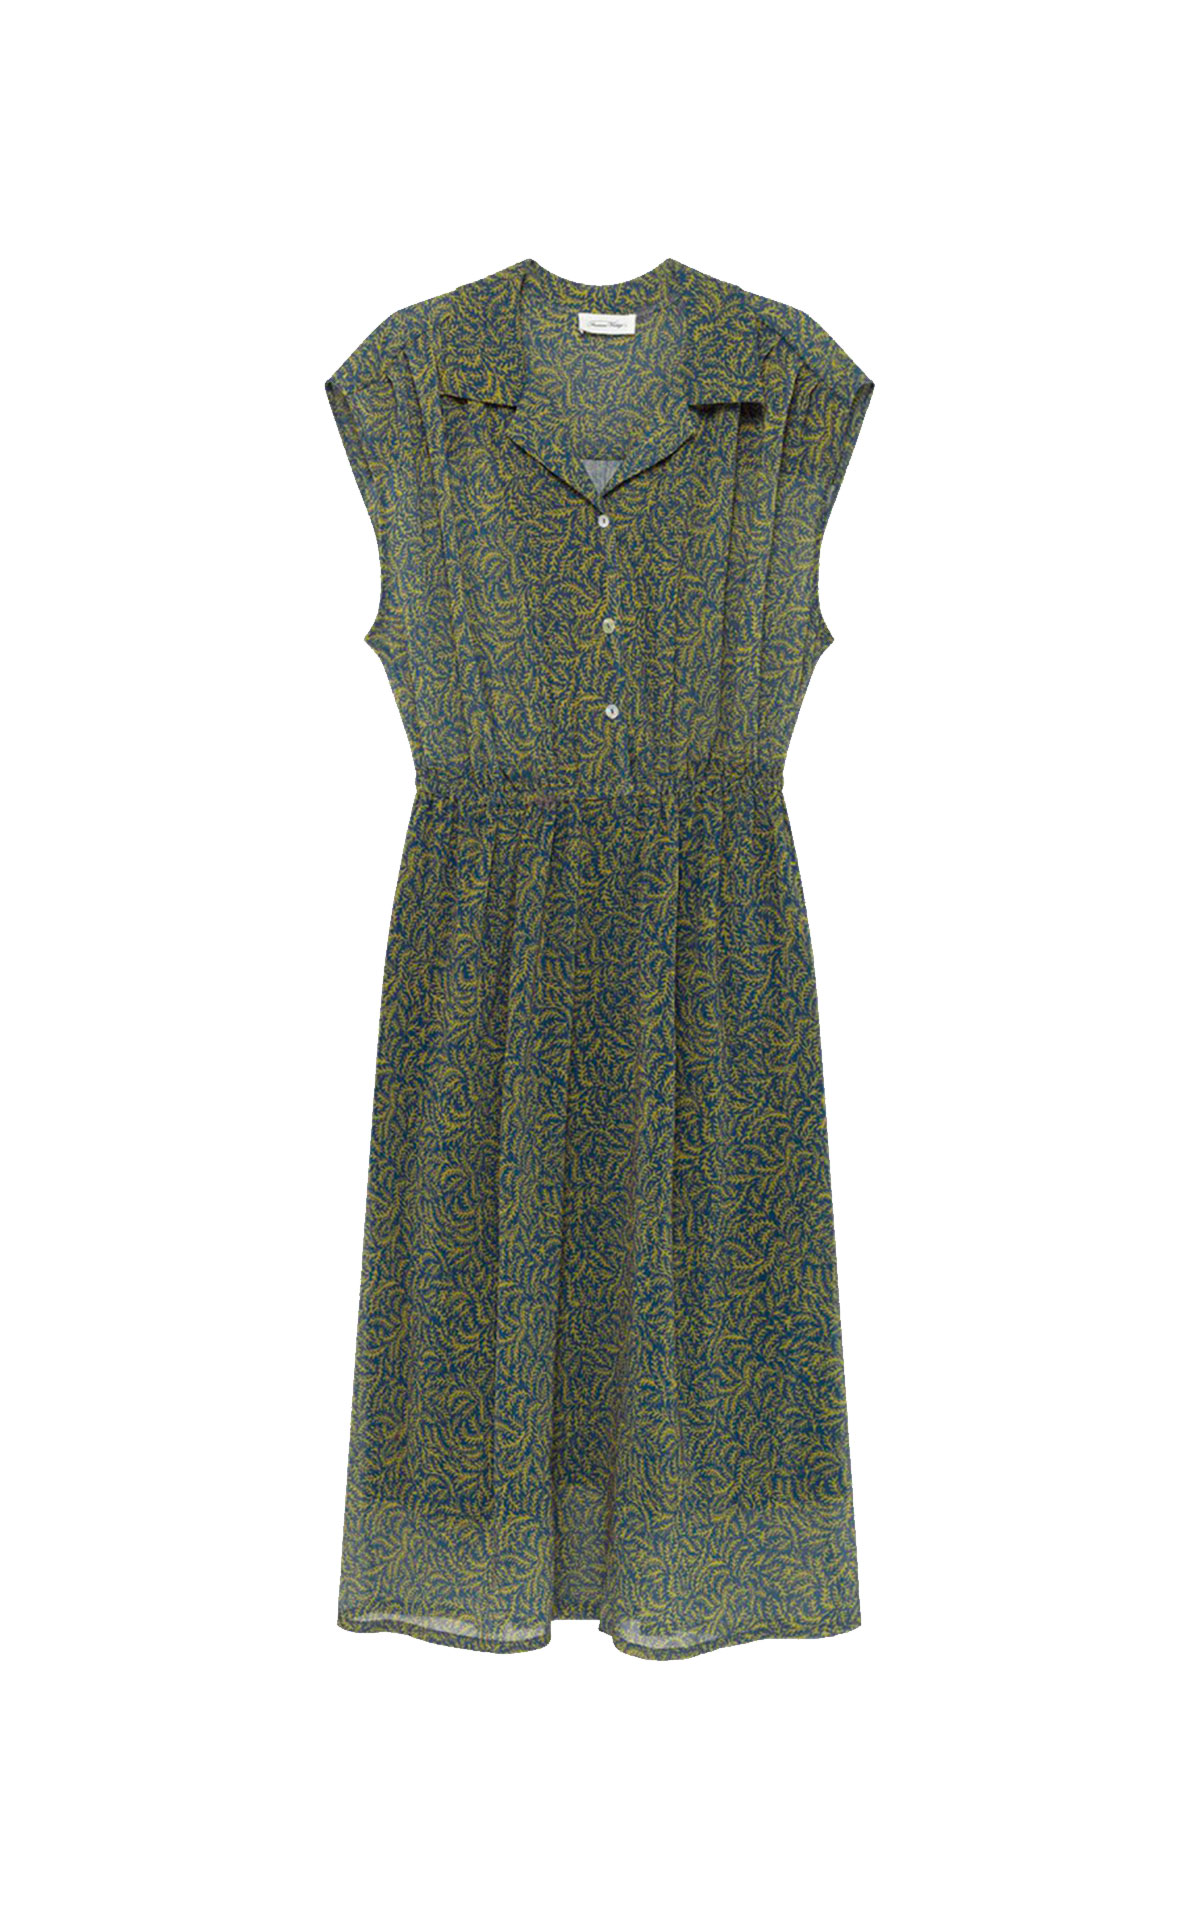 Green printed dress American Vintage